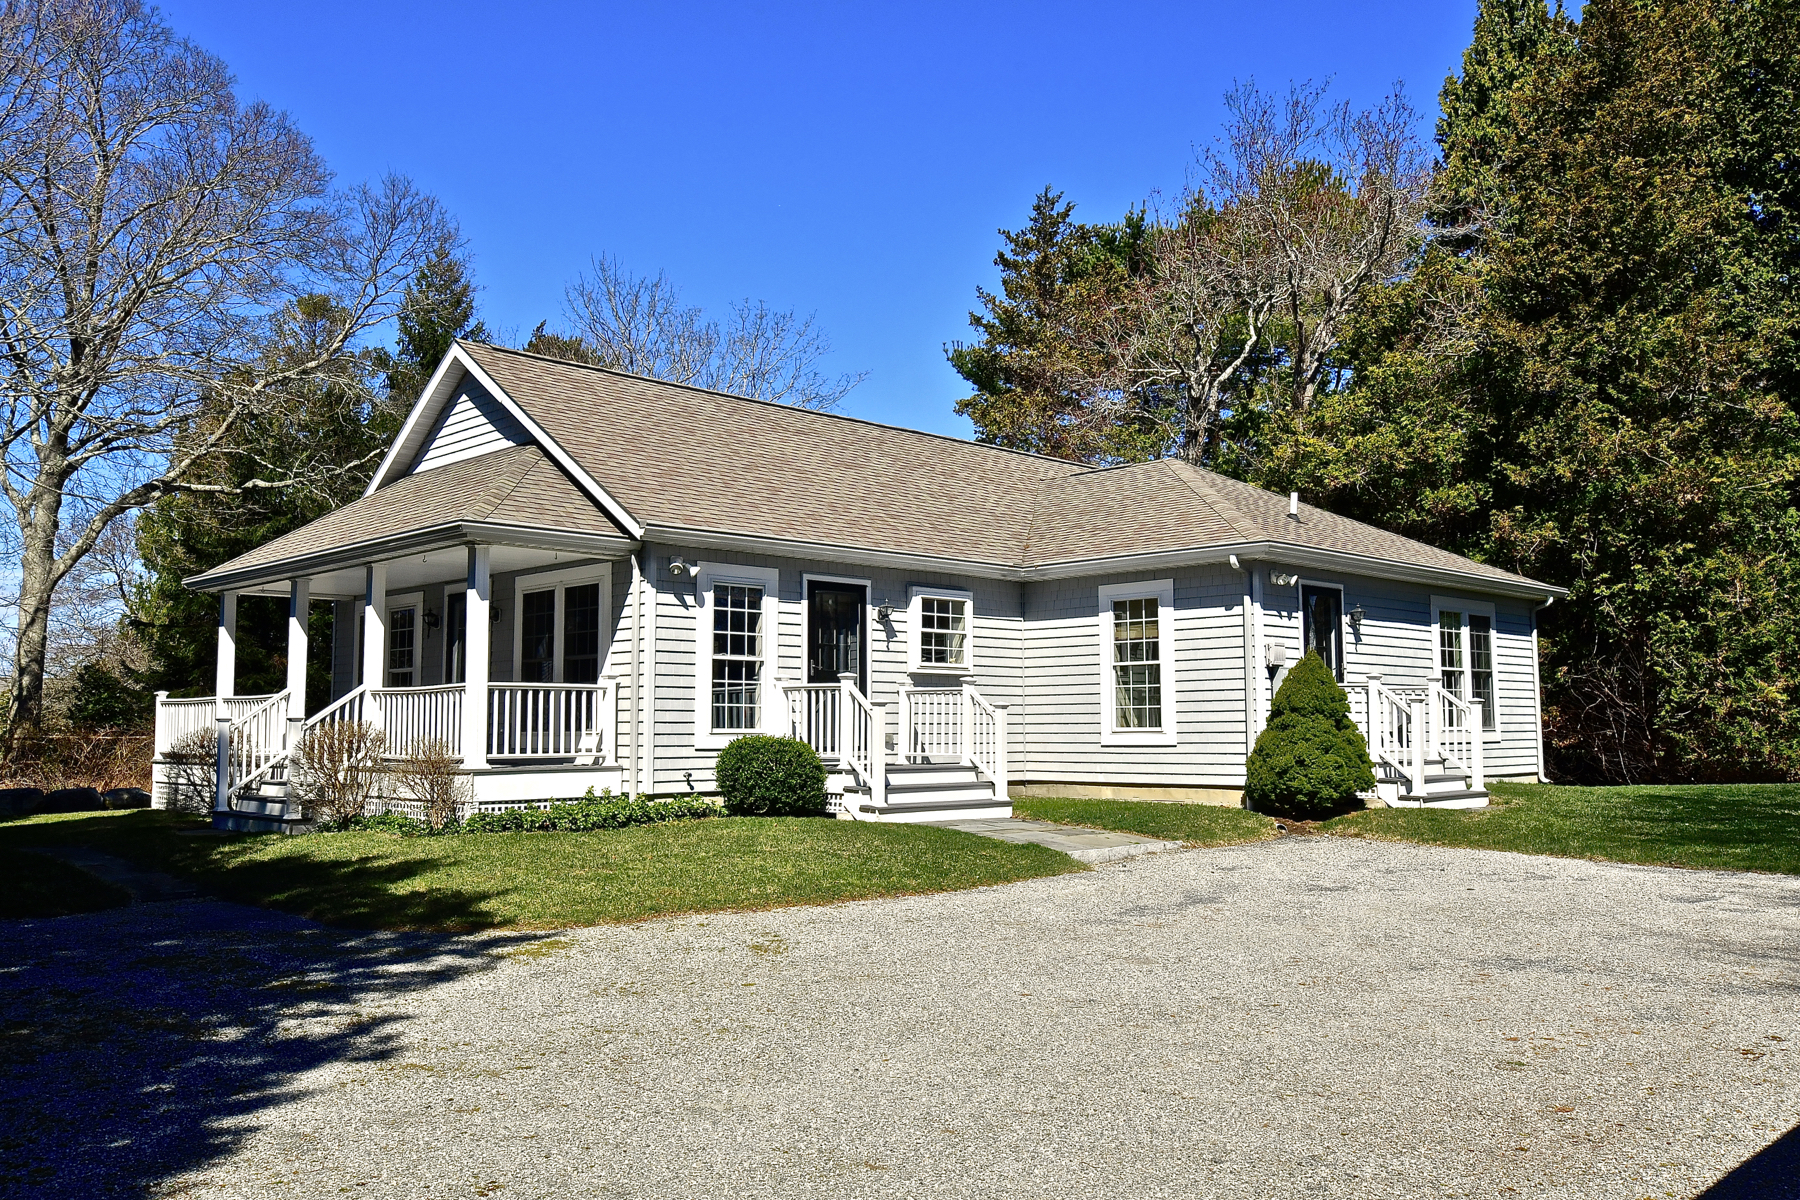 Single Family Homes للـ Sale في Private, Charming Home in Old Black Point 290 R Old Black Point Rd, East Lyme, Connecticut 06357 United States